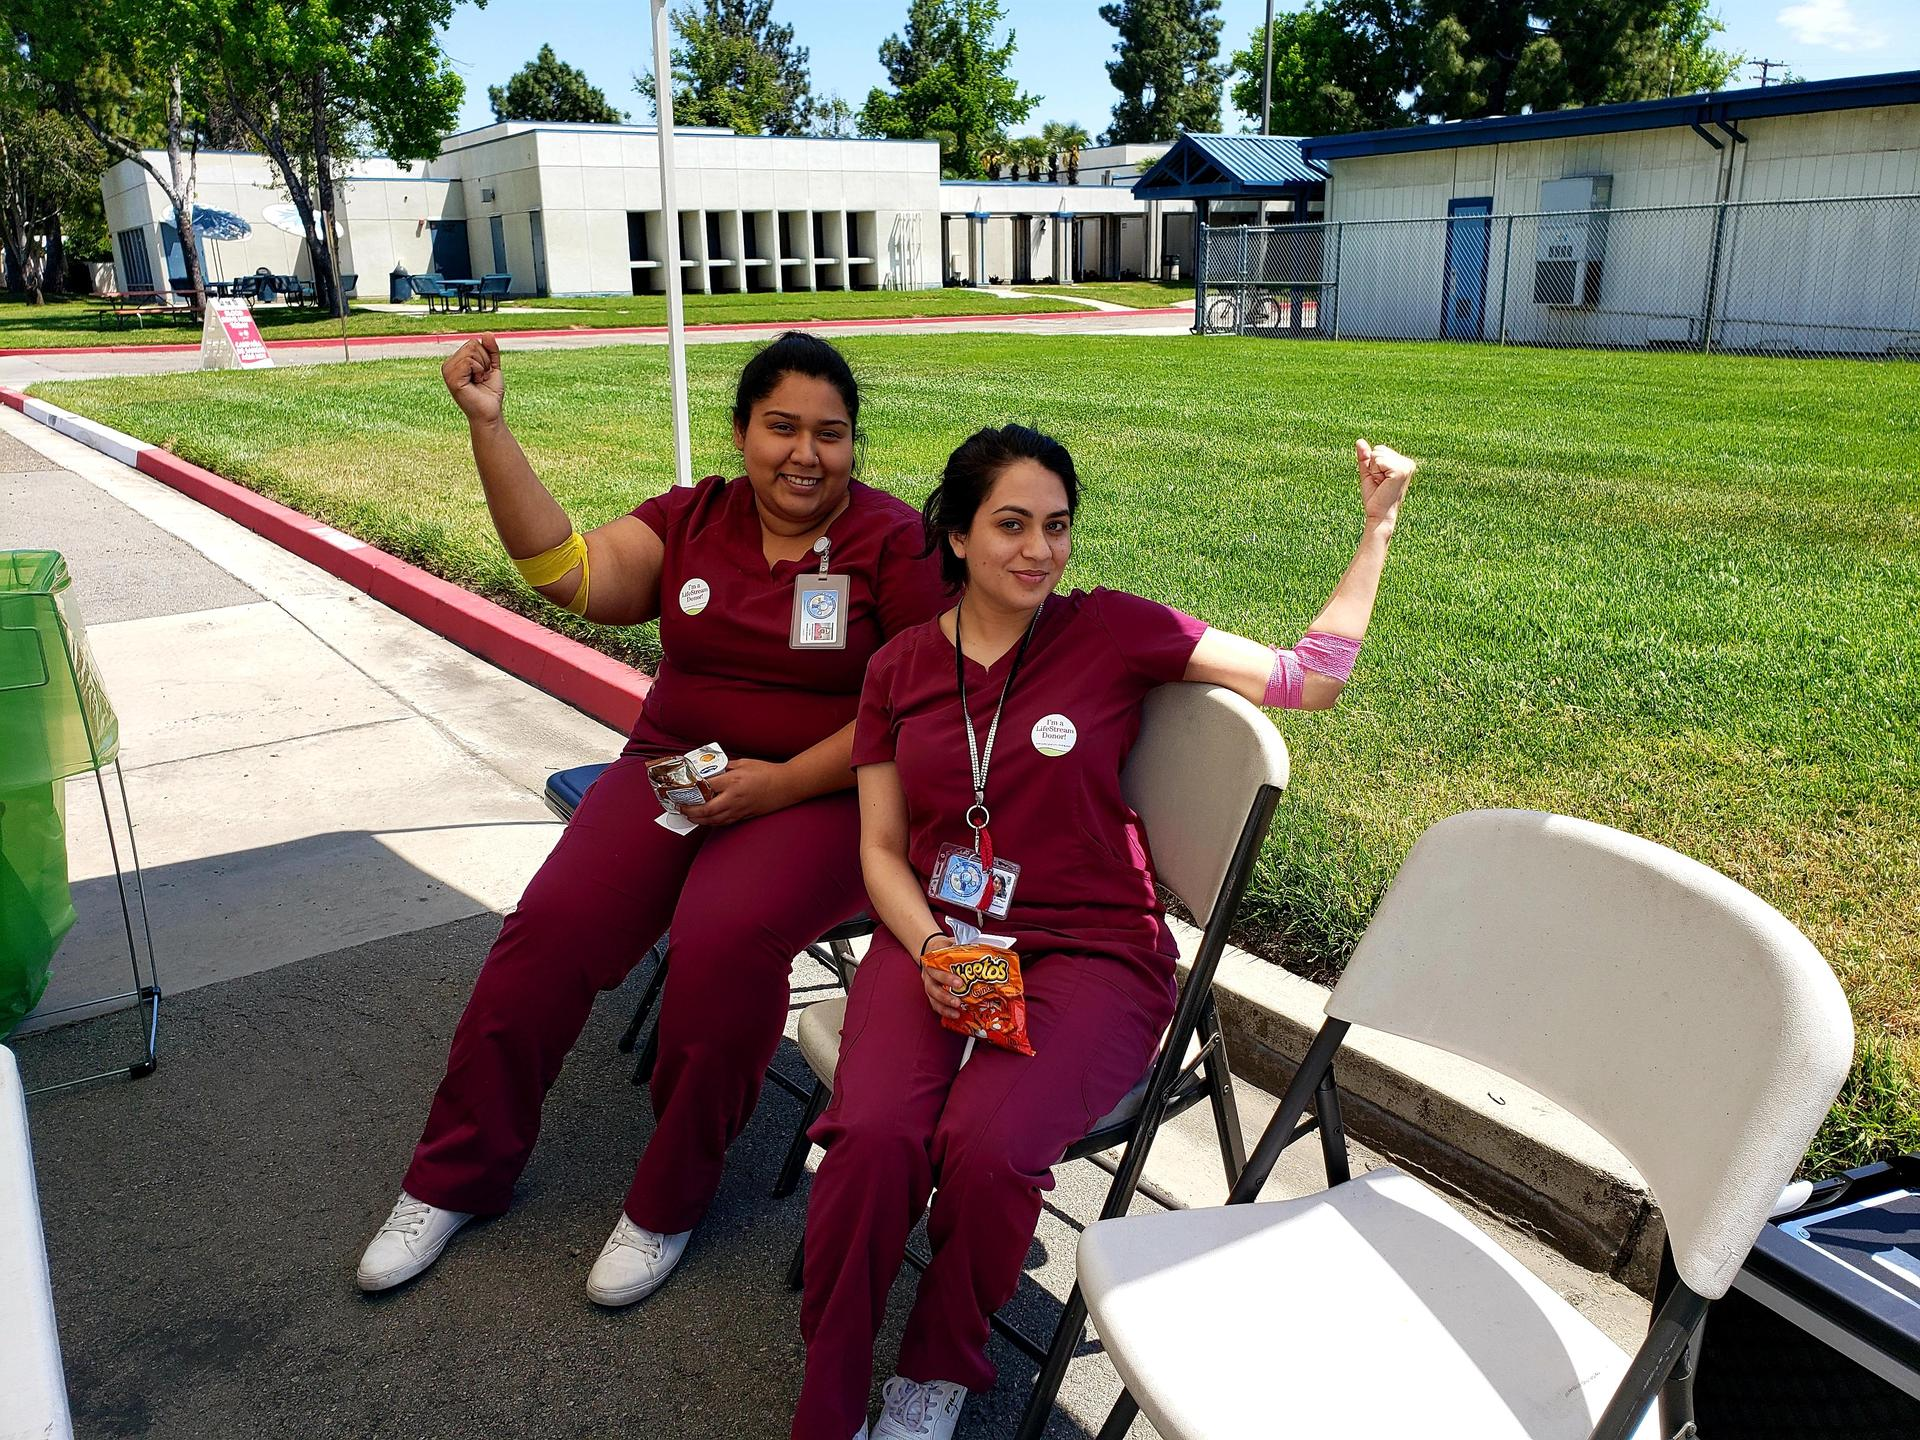 Medical Assistant program volunteering at blood drive.